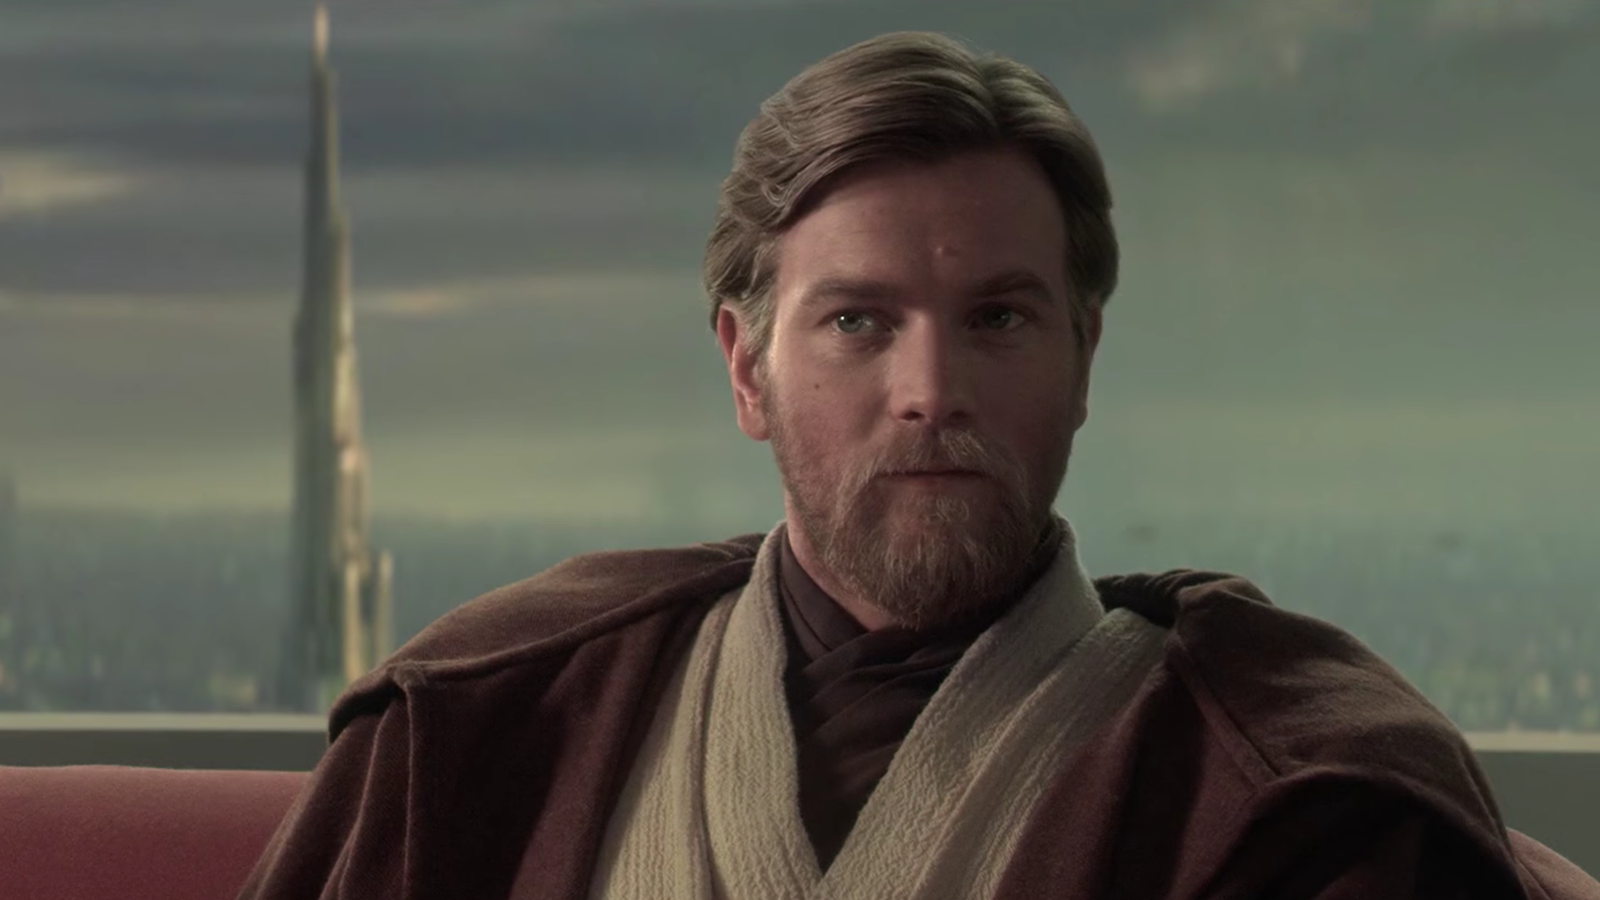 Report: Ewan McGregor Will Return as Obi-Wan Kenobi In His Own Disney+ Series